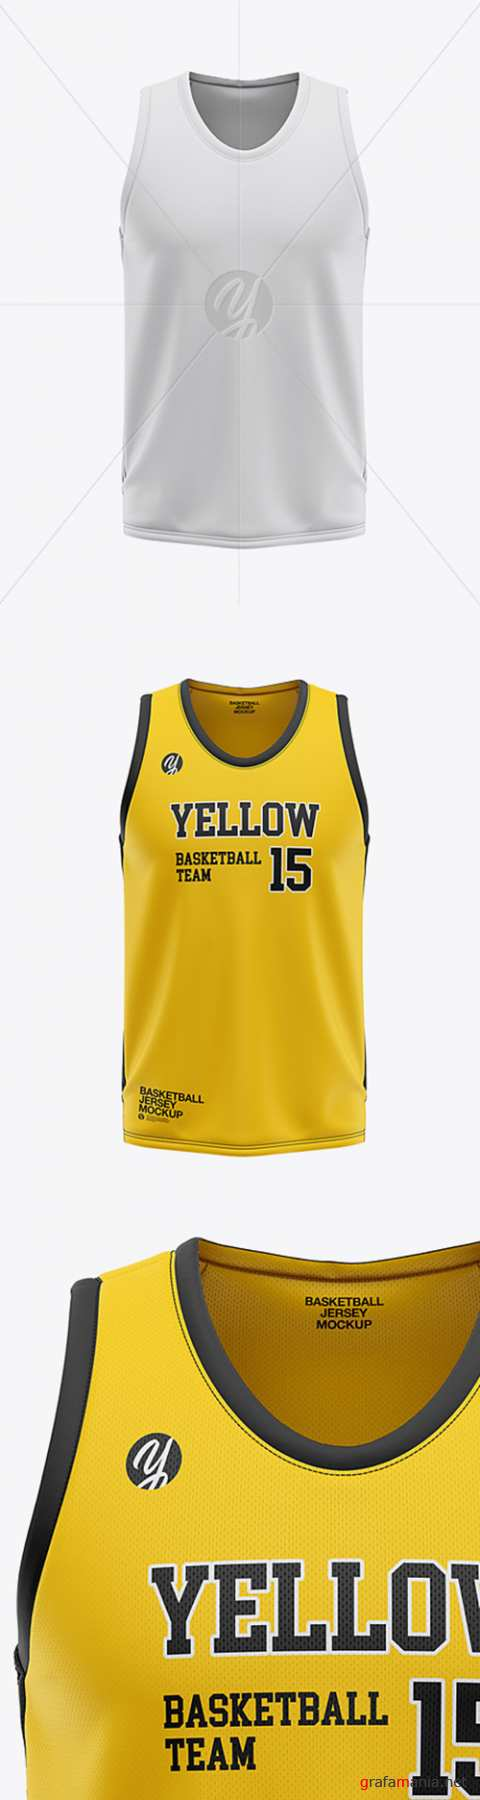 Mens U-Neck Basketball Jersey Mockup - Front View 36120